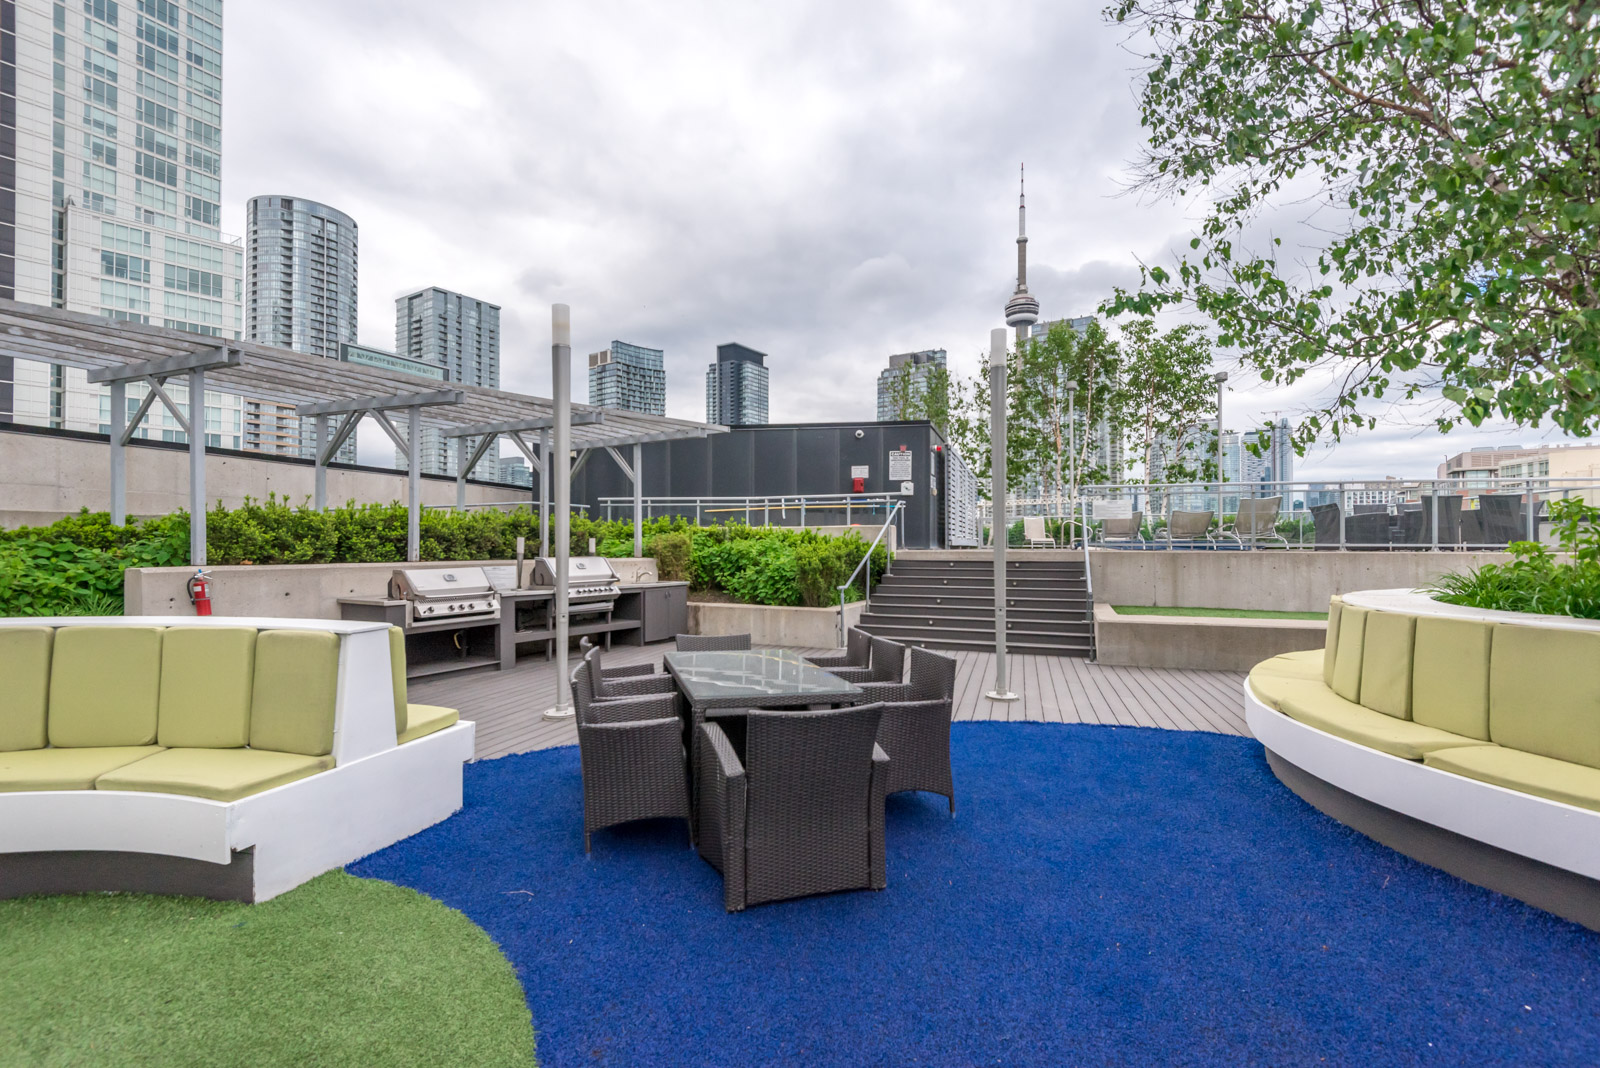 Outside view showing rooftop and chairs and CN Tower in the background.